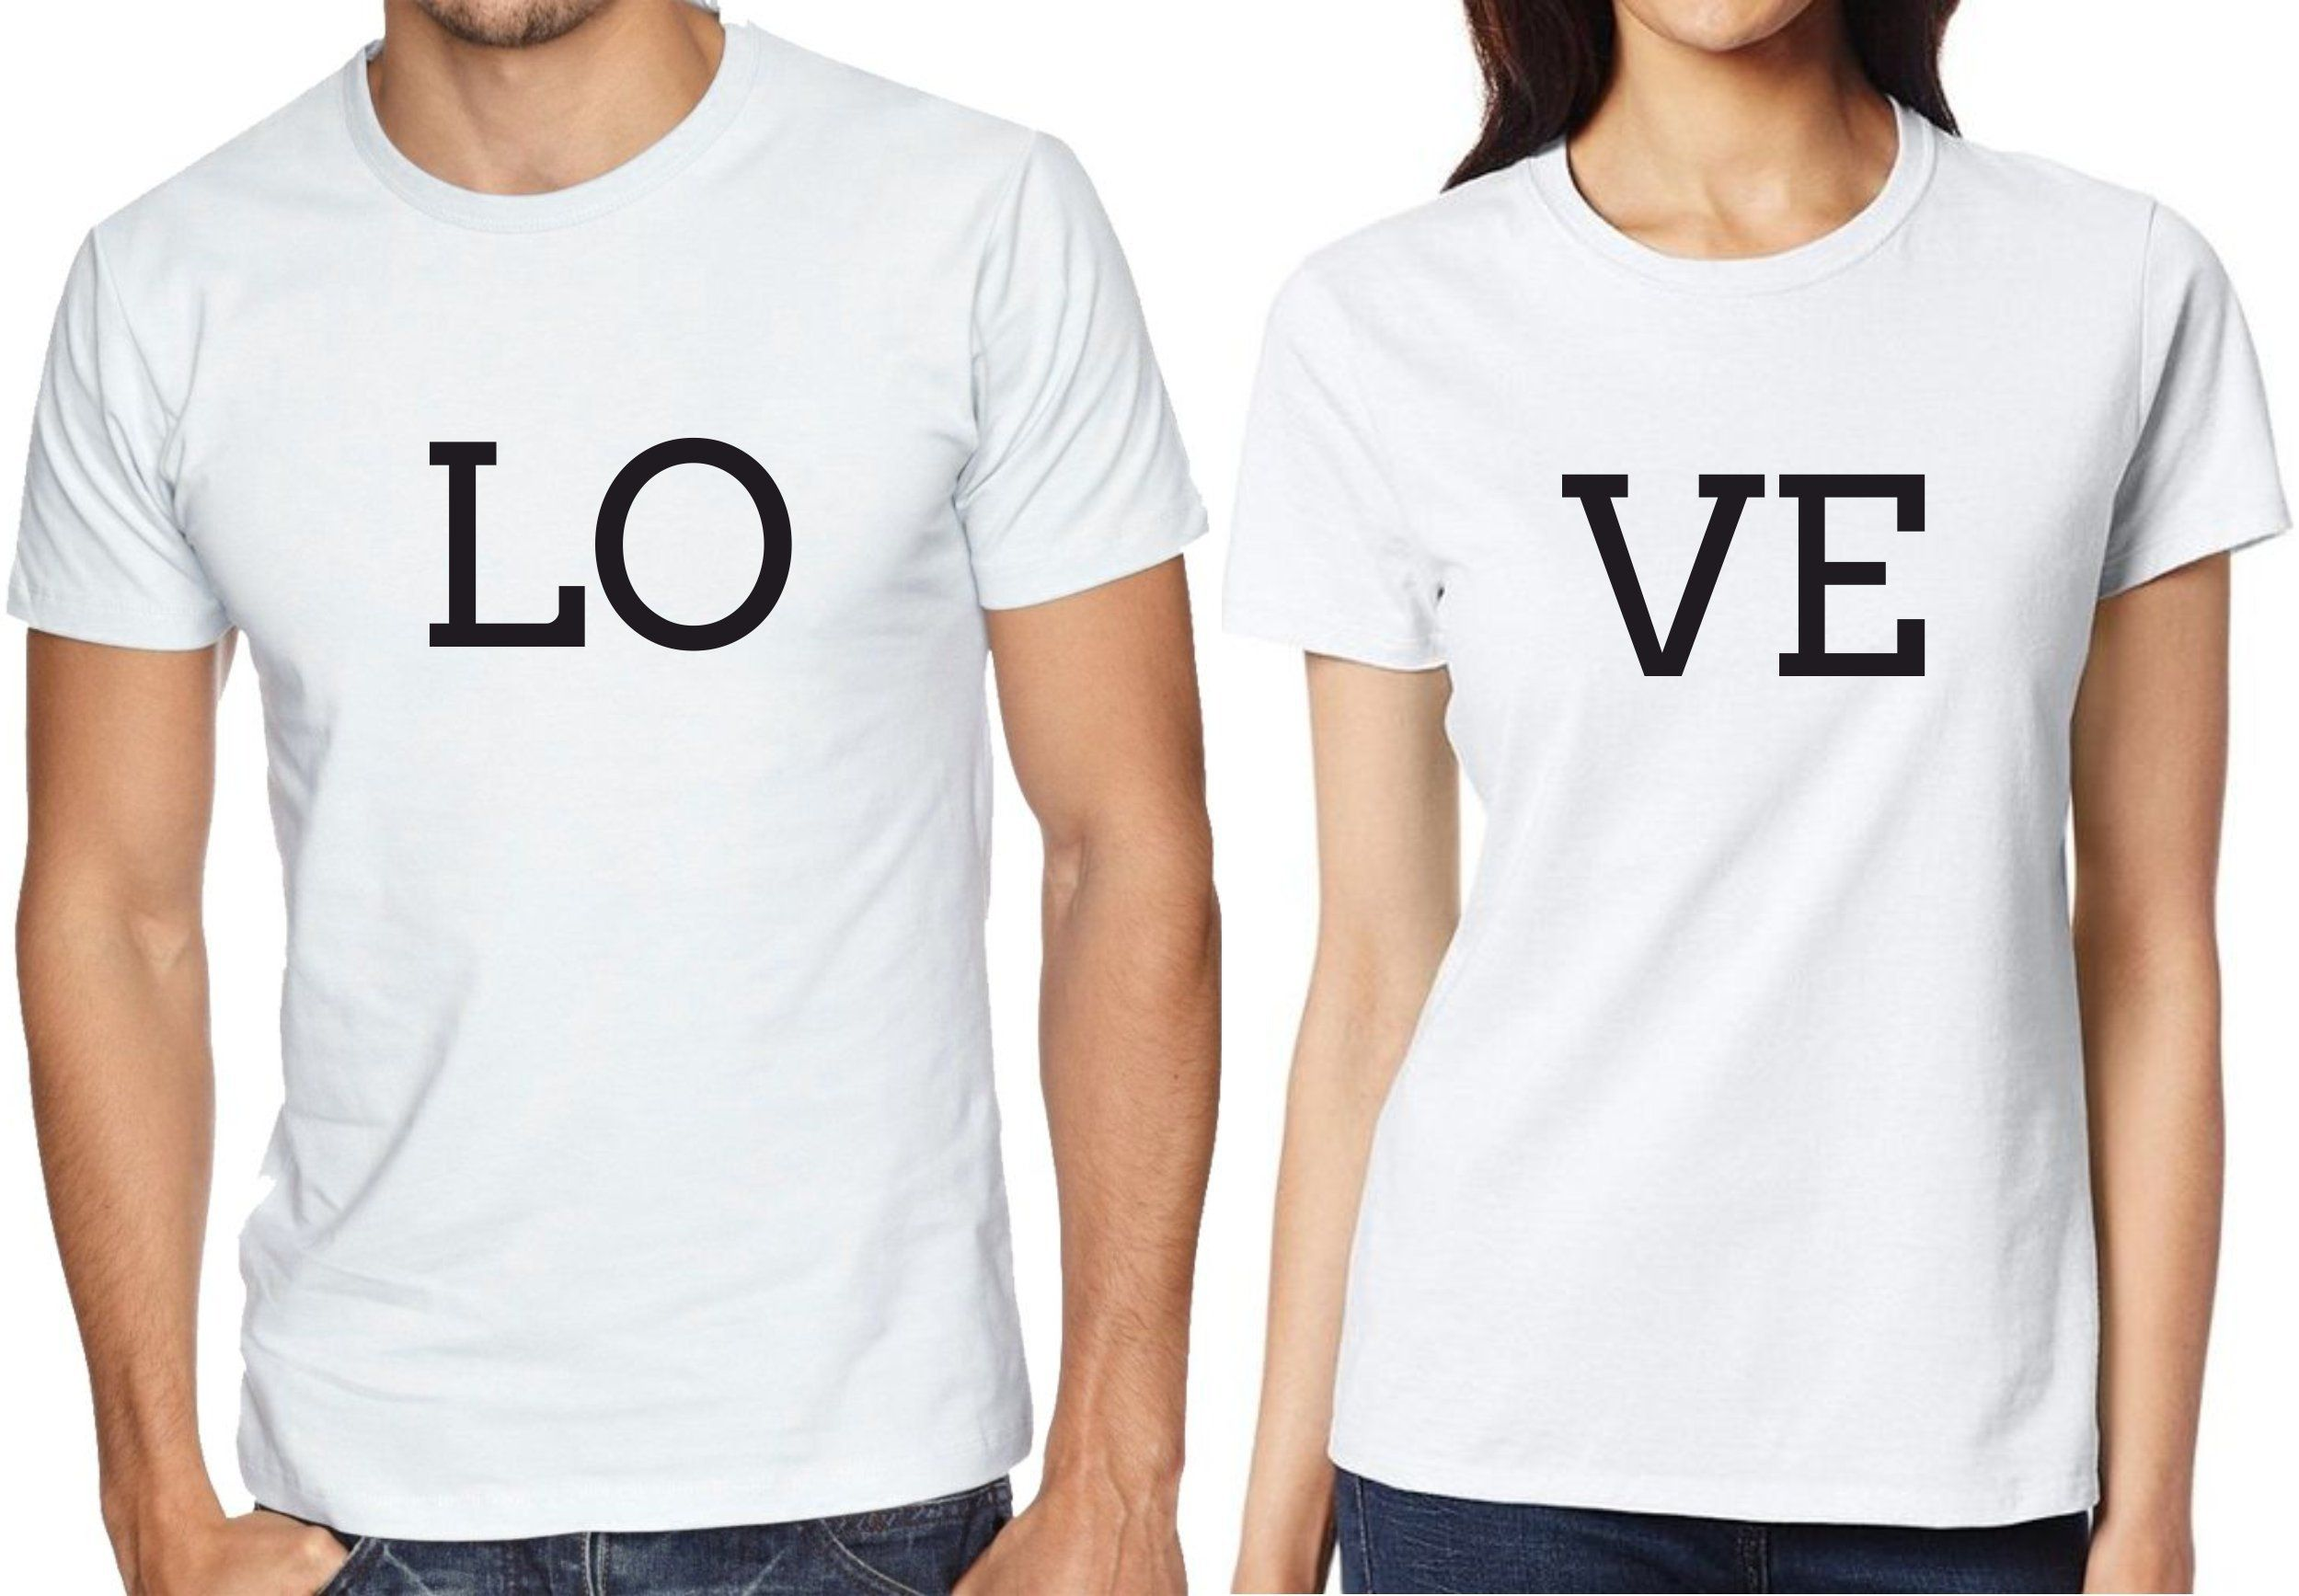 Love For Lovers T-shirt Matching Couple Shirts Anniversary Gift Men's Women's Tee Gift For Lover